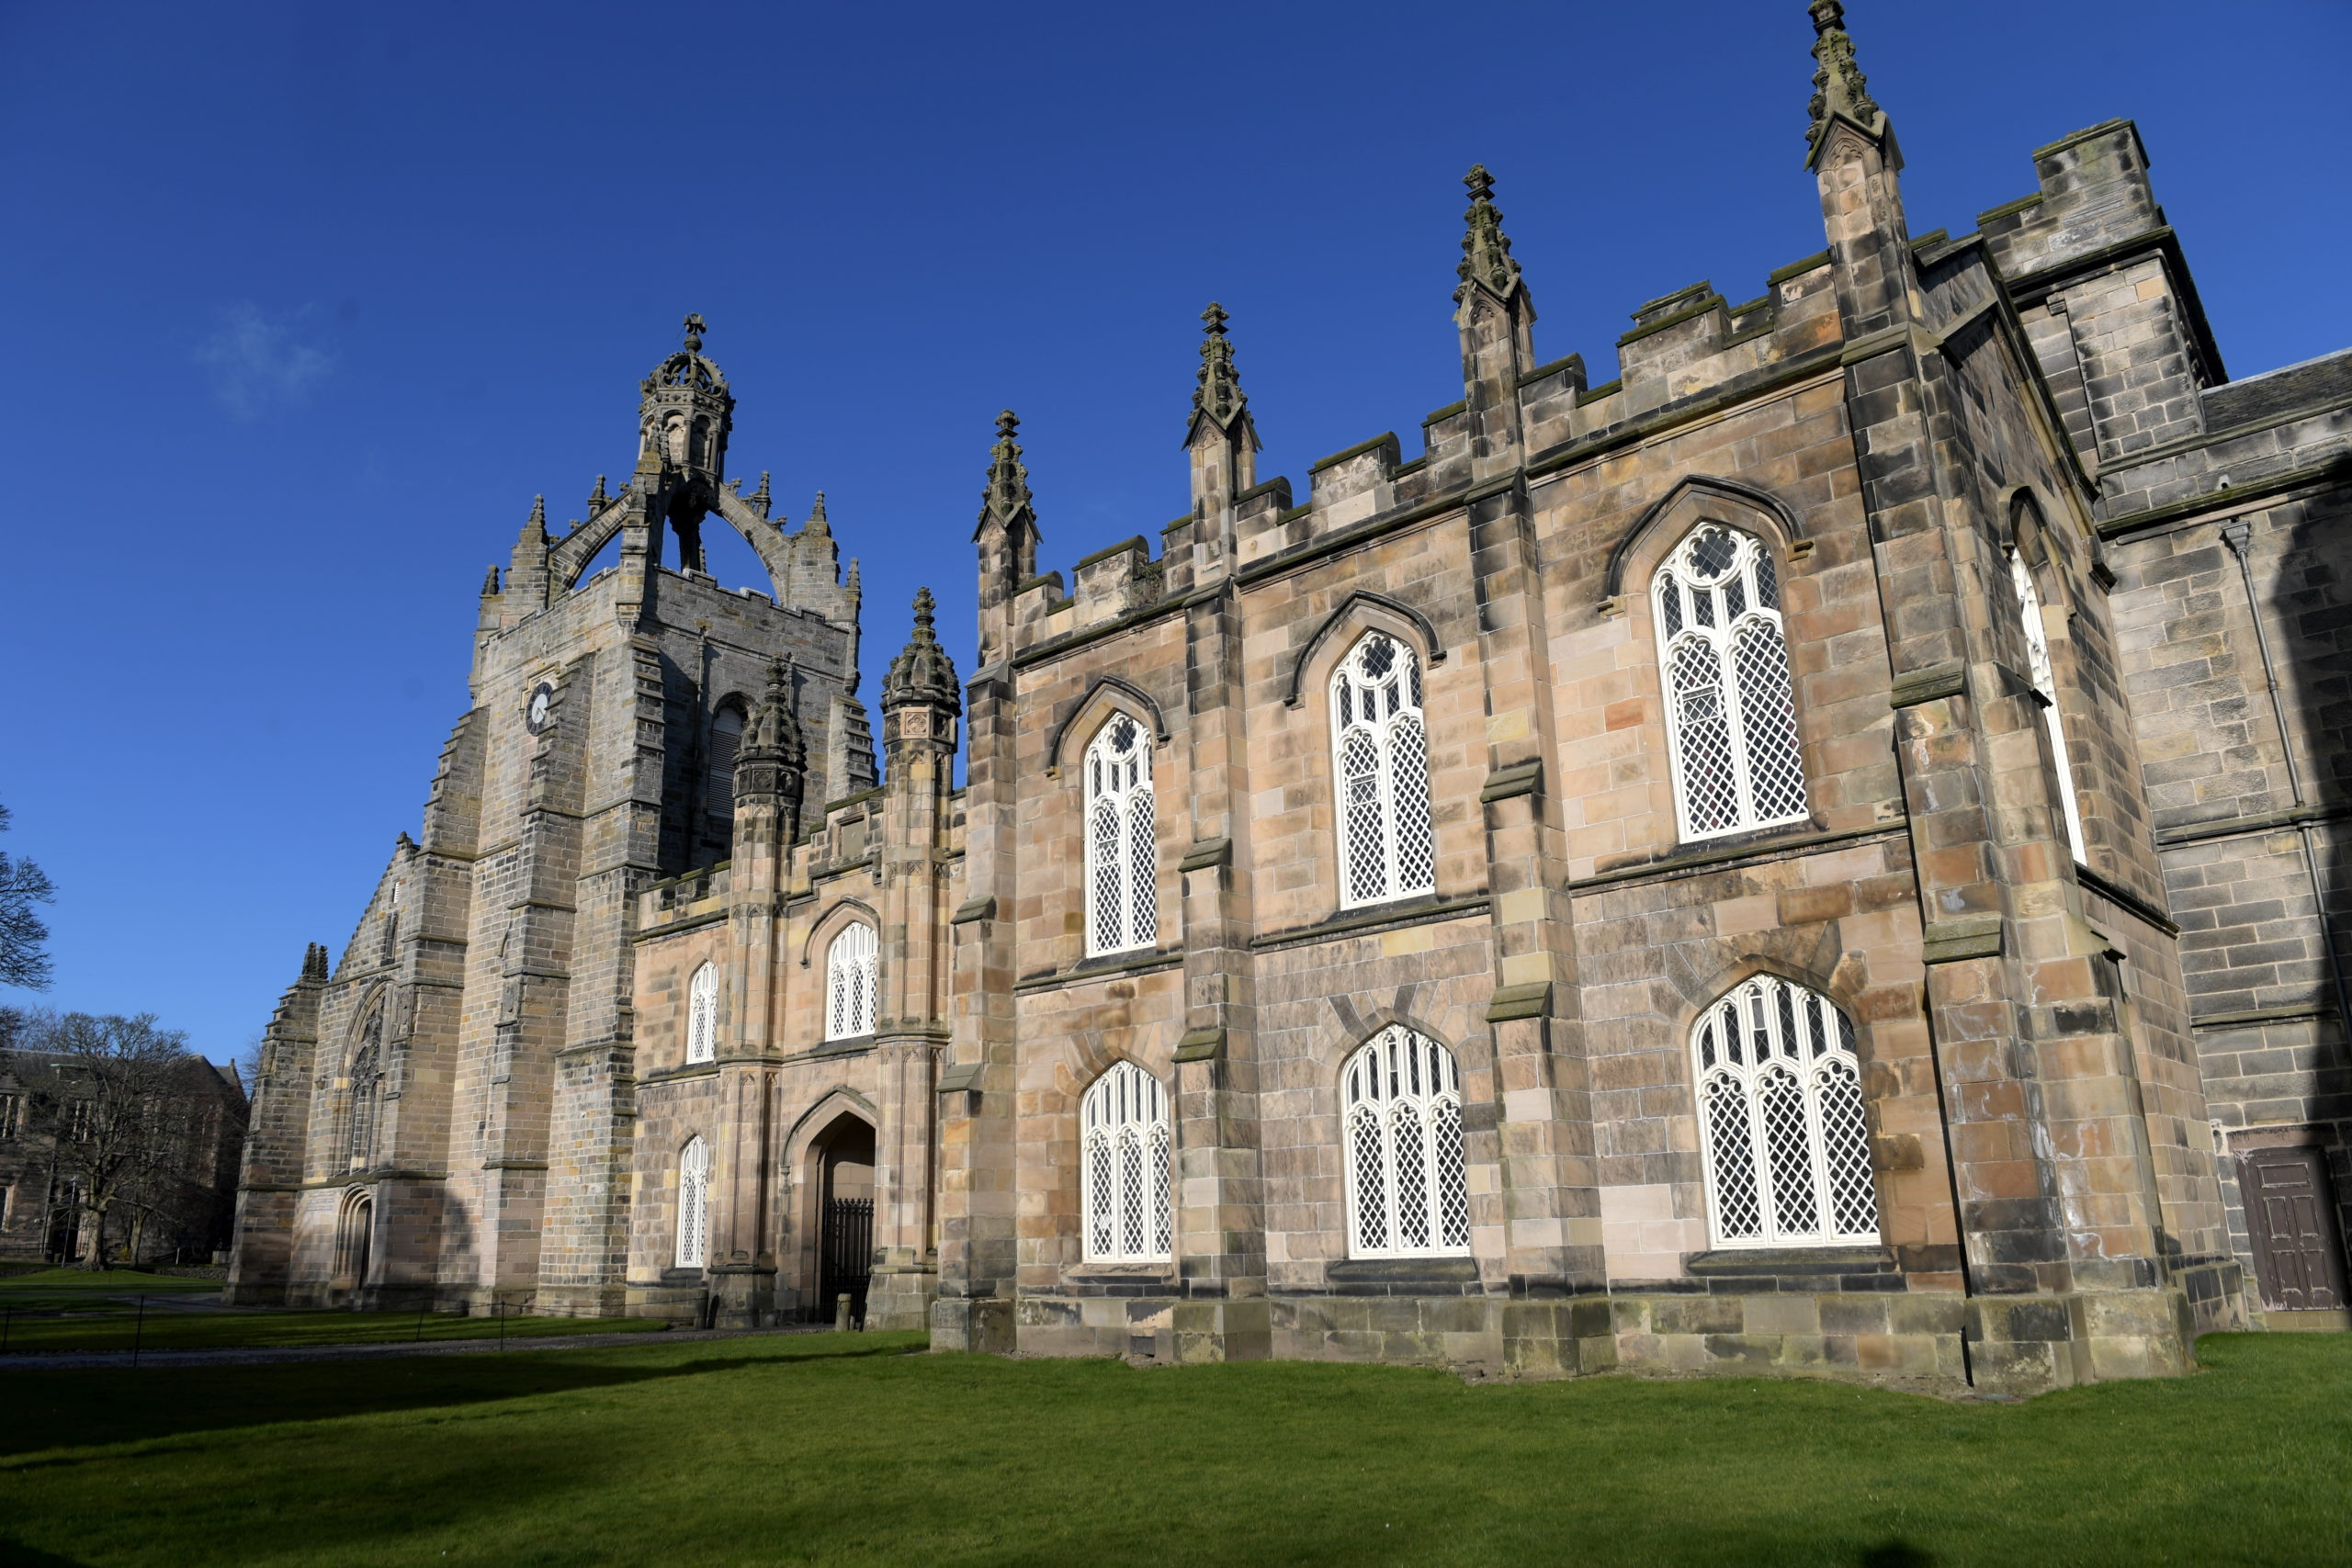 Researchers from Aberdeen University are taking part in the world's biggest study into the psychological impact of Covid-19